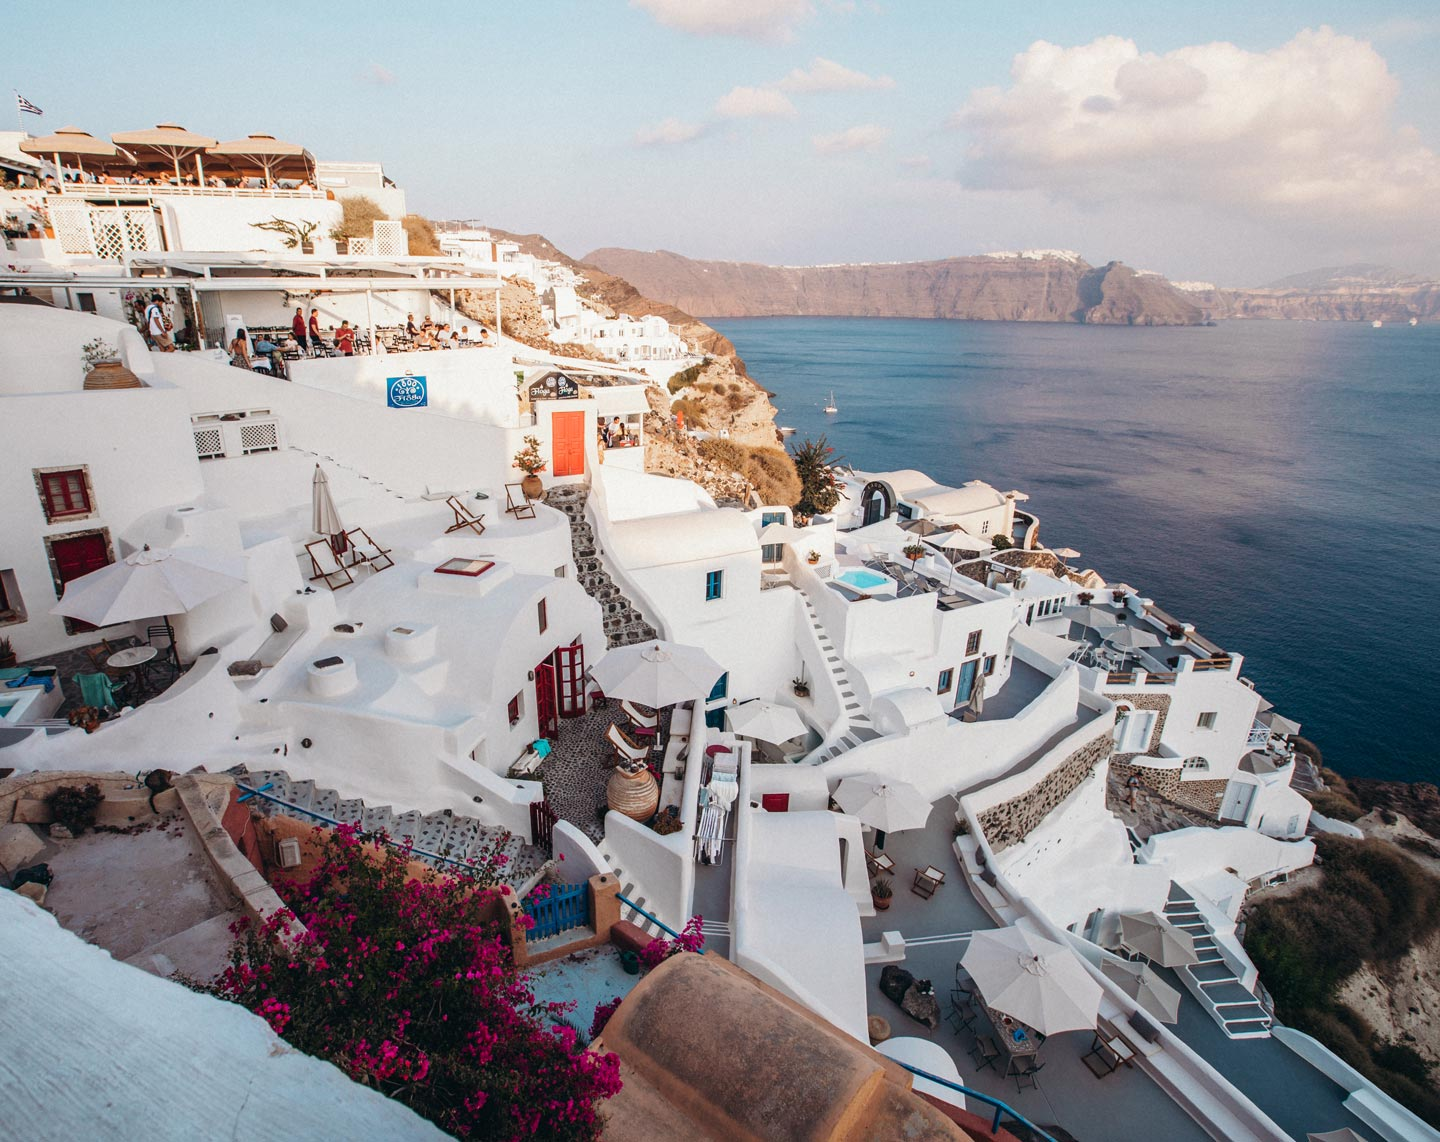 What We Loved And Hated About Santorini